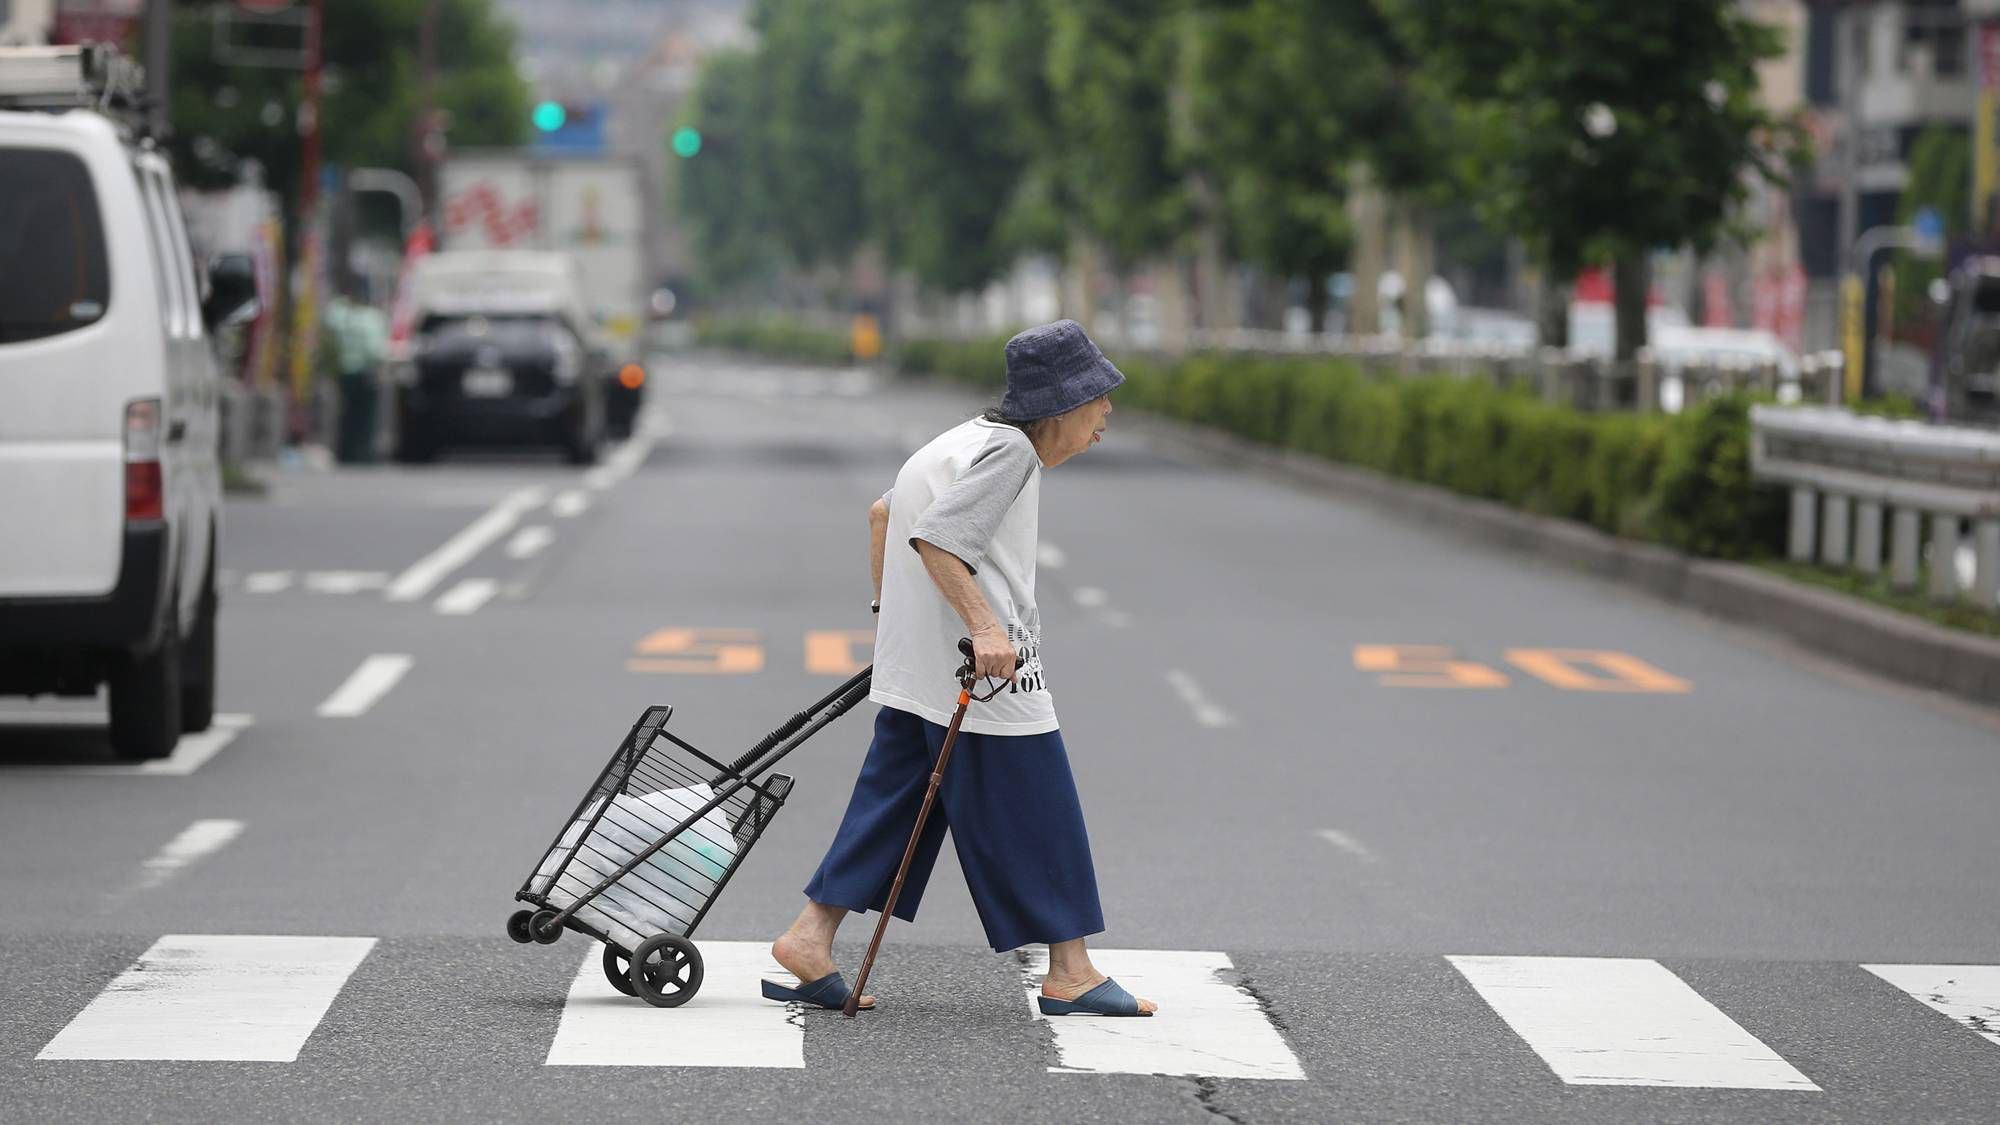 Bold steps: Japan's remedy for a rapidly aging society - The Globe